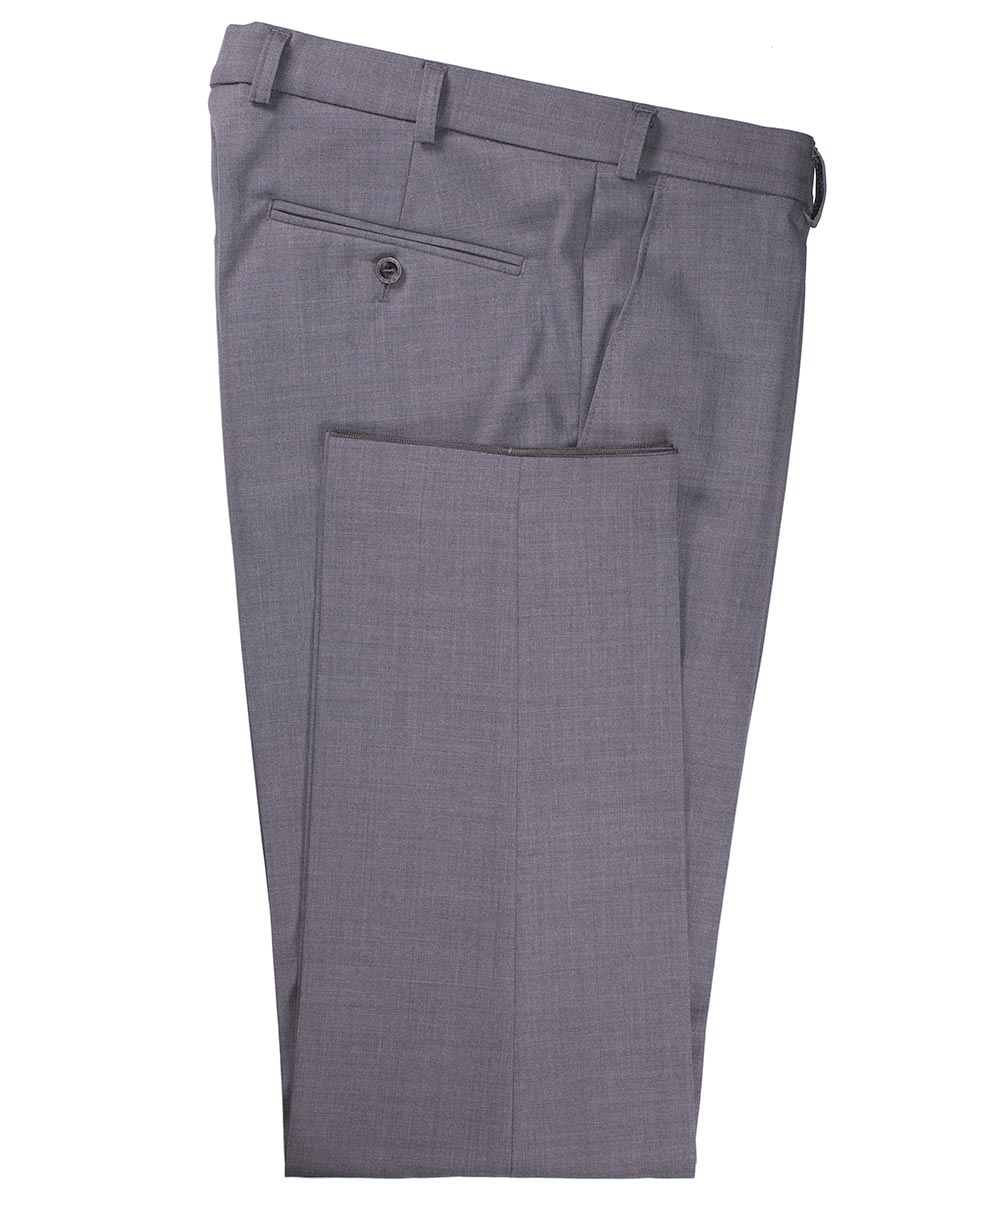 Madrid Grey Dress Pants